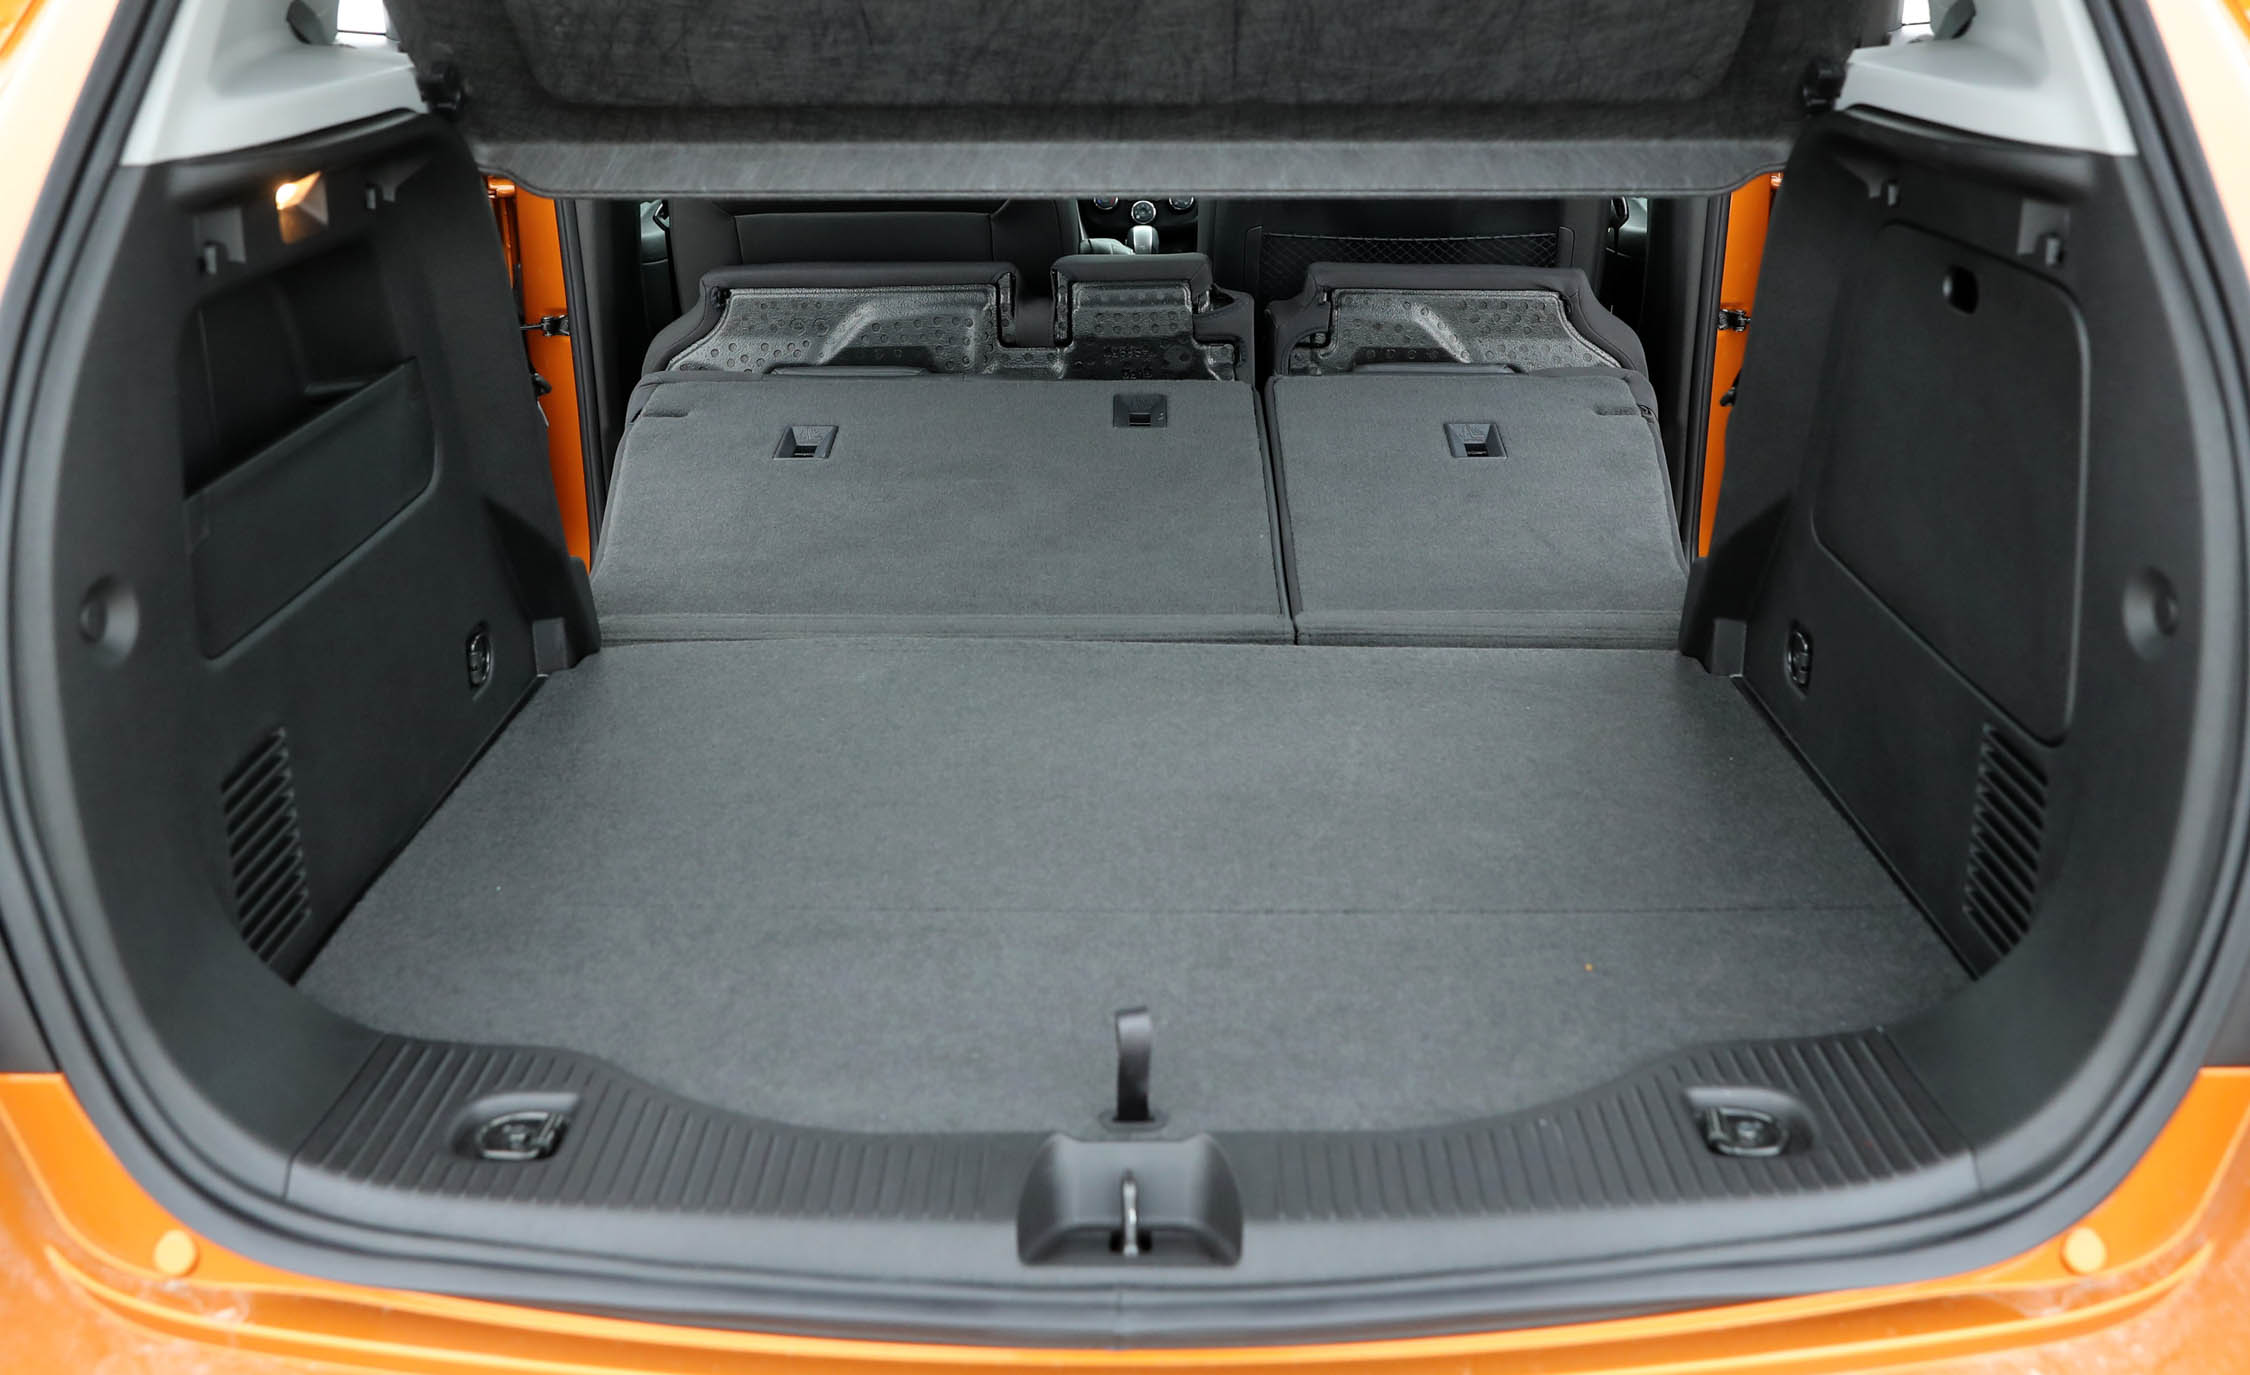 2017 Chevrolet Trax View Cargo Seats Folded (View 6 of 47)